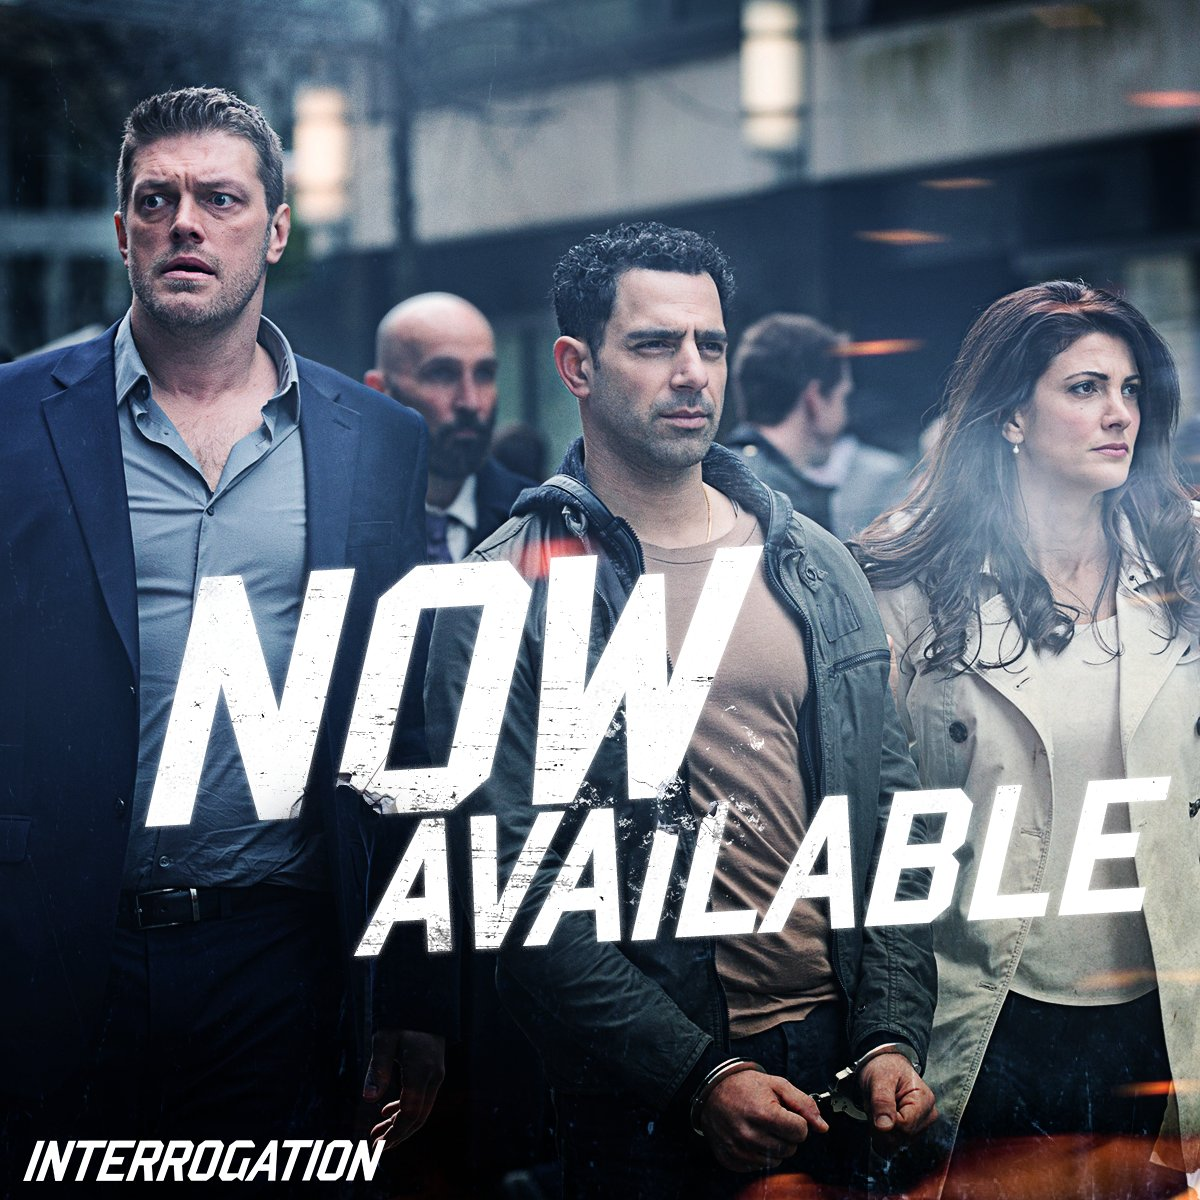 Join the force and get #Interrogation NOW available on DVD & Digital HD. https://t.co/Zy4ZRxZJw6 https://t.co/PowZm23PFX